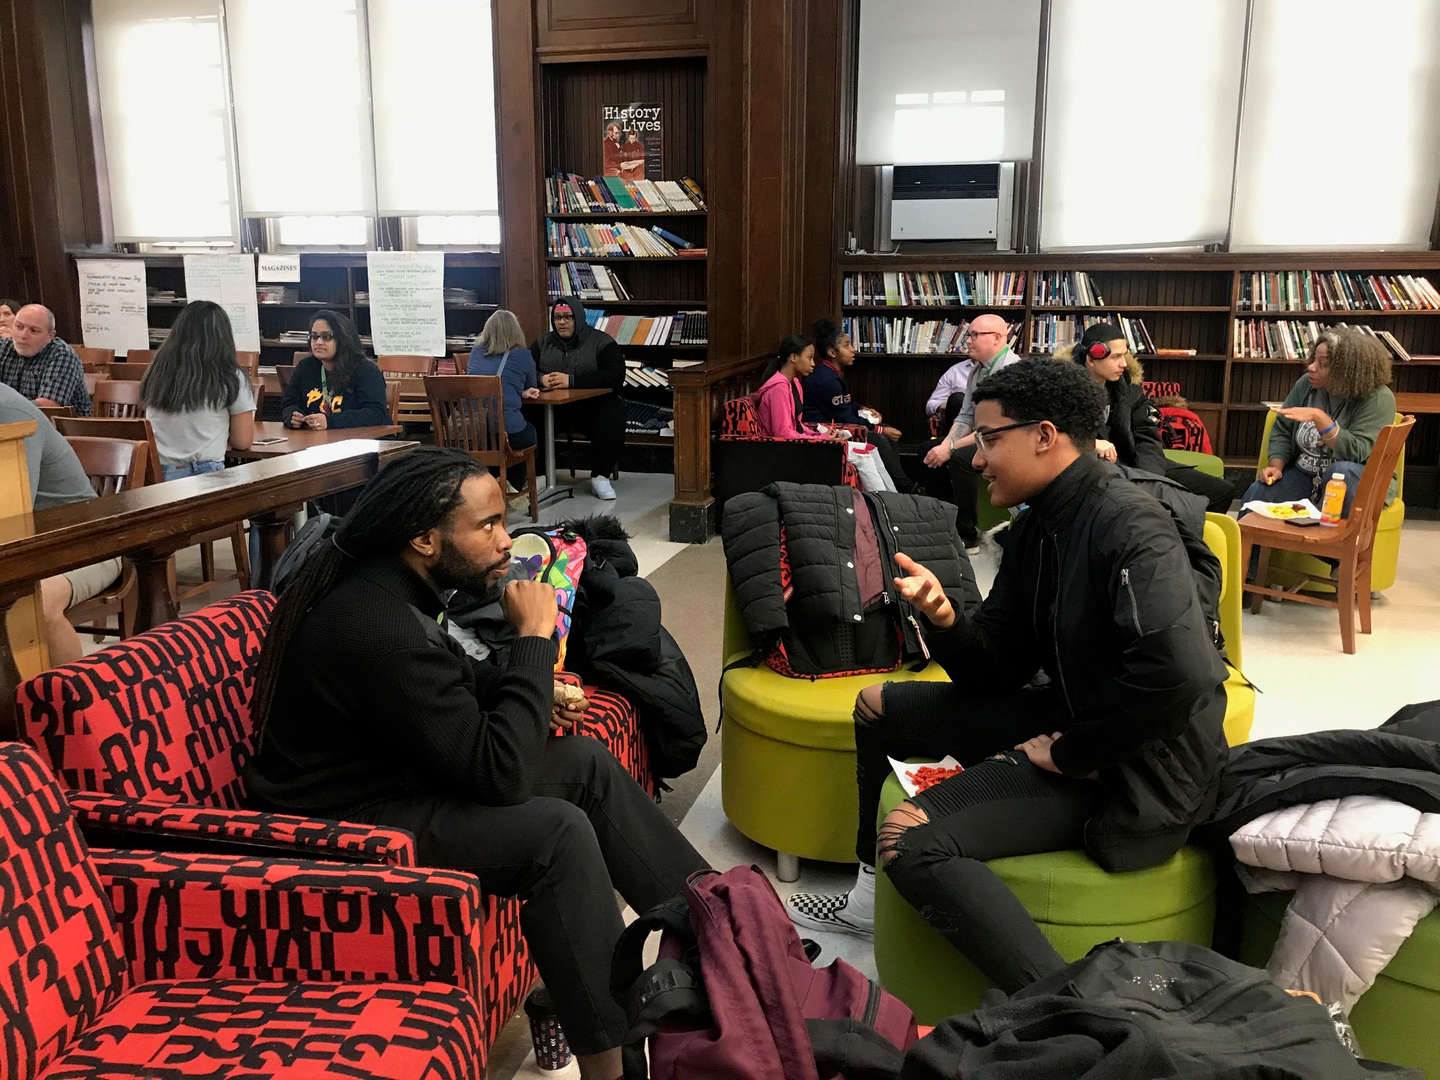 Student talks closely with an adult in the library